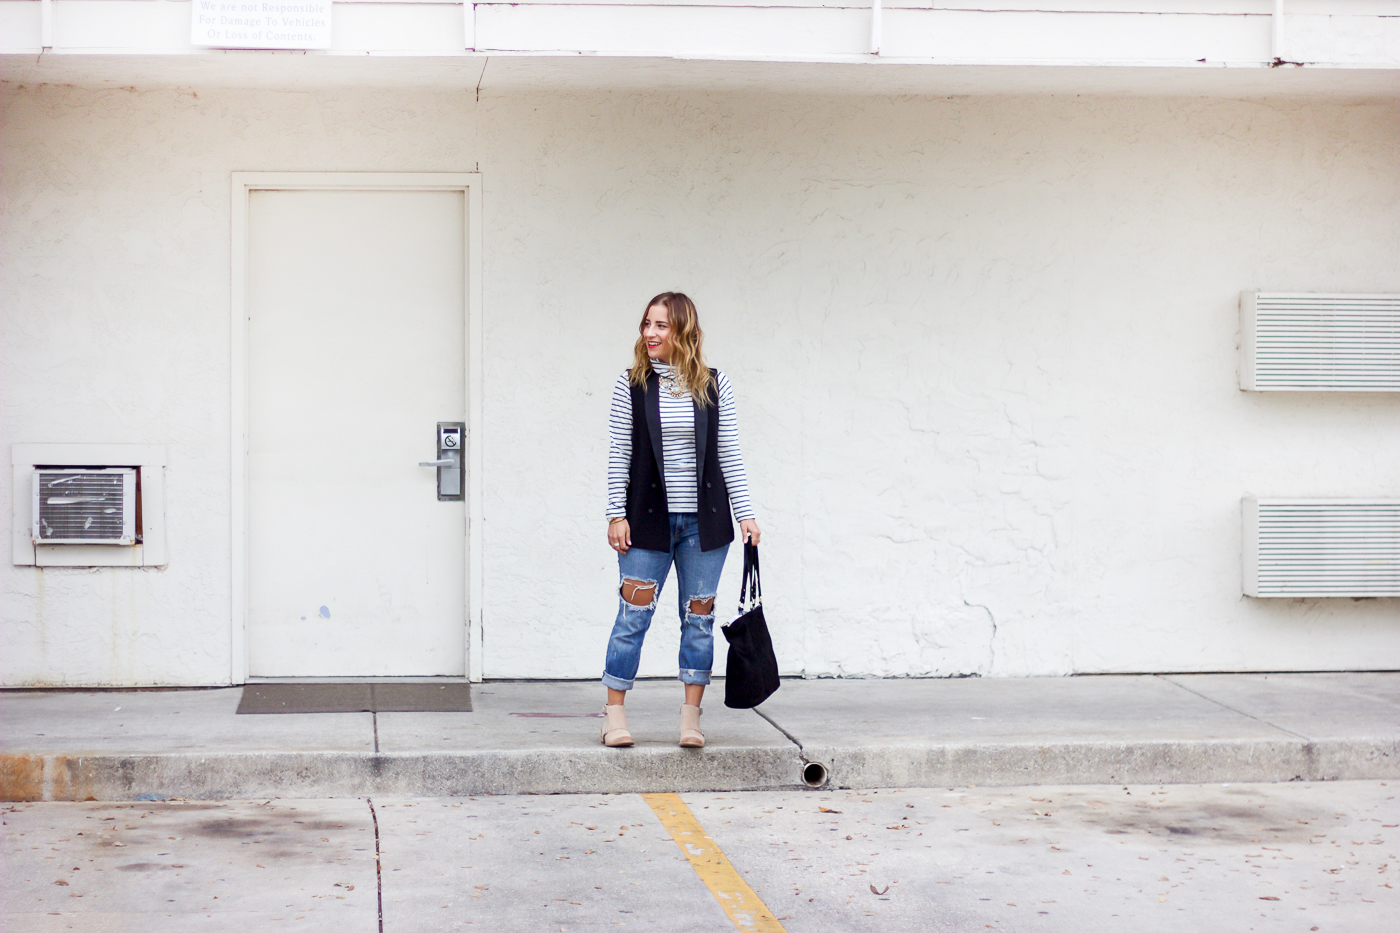 Weekend outfit inspiration, featuring a striped tee from Madewell and ripped boyfriend jeans from Zara